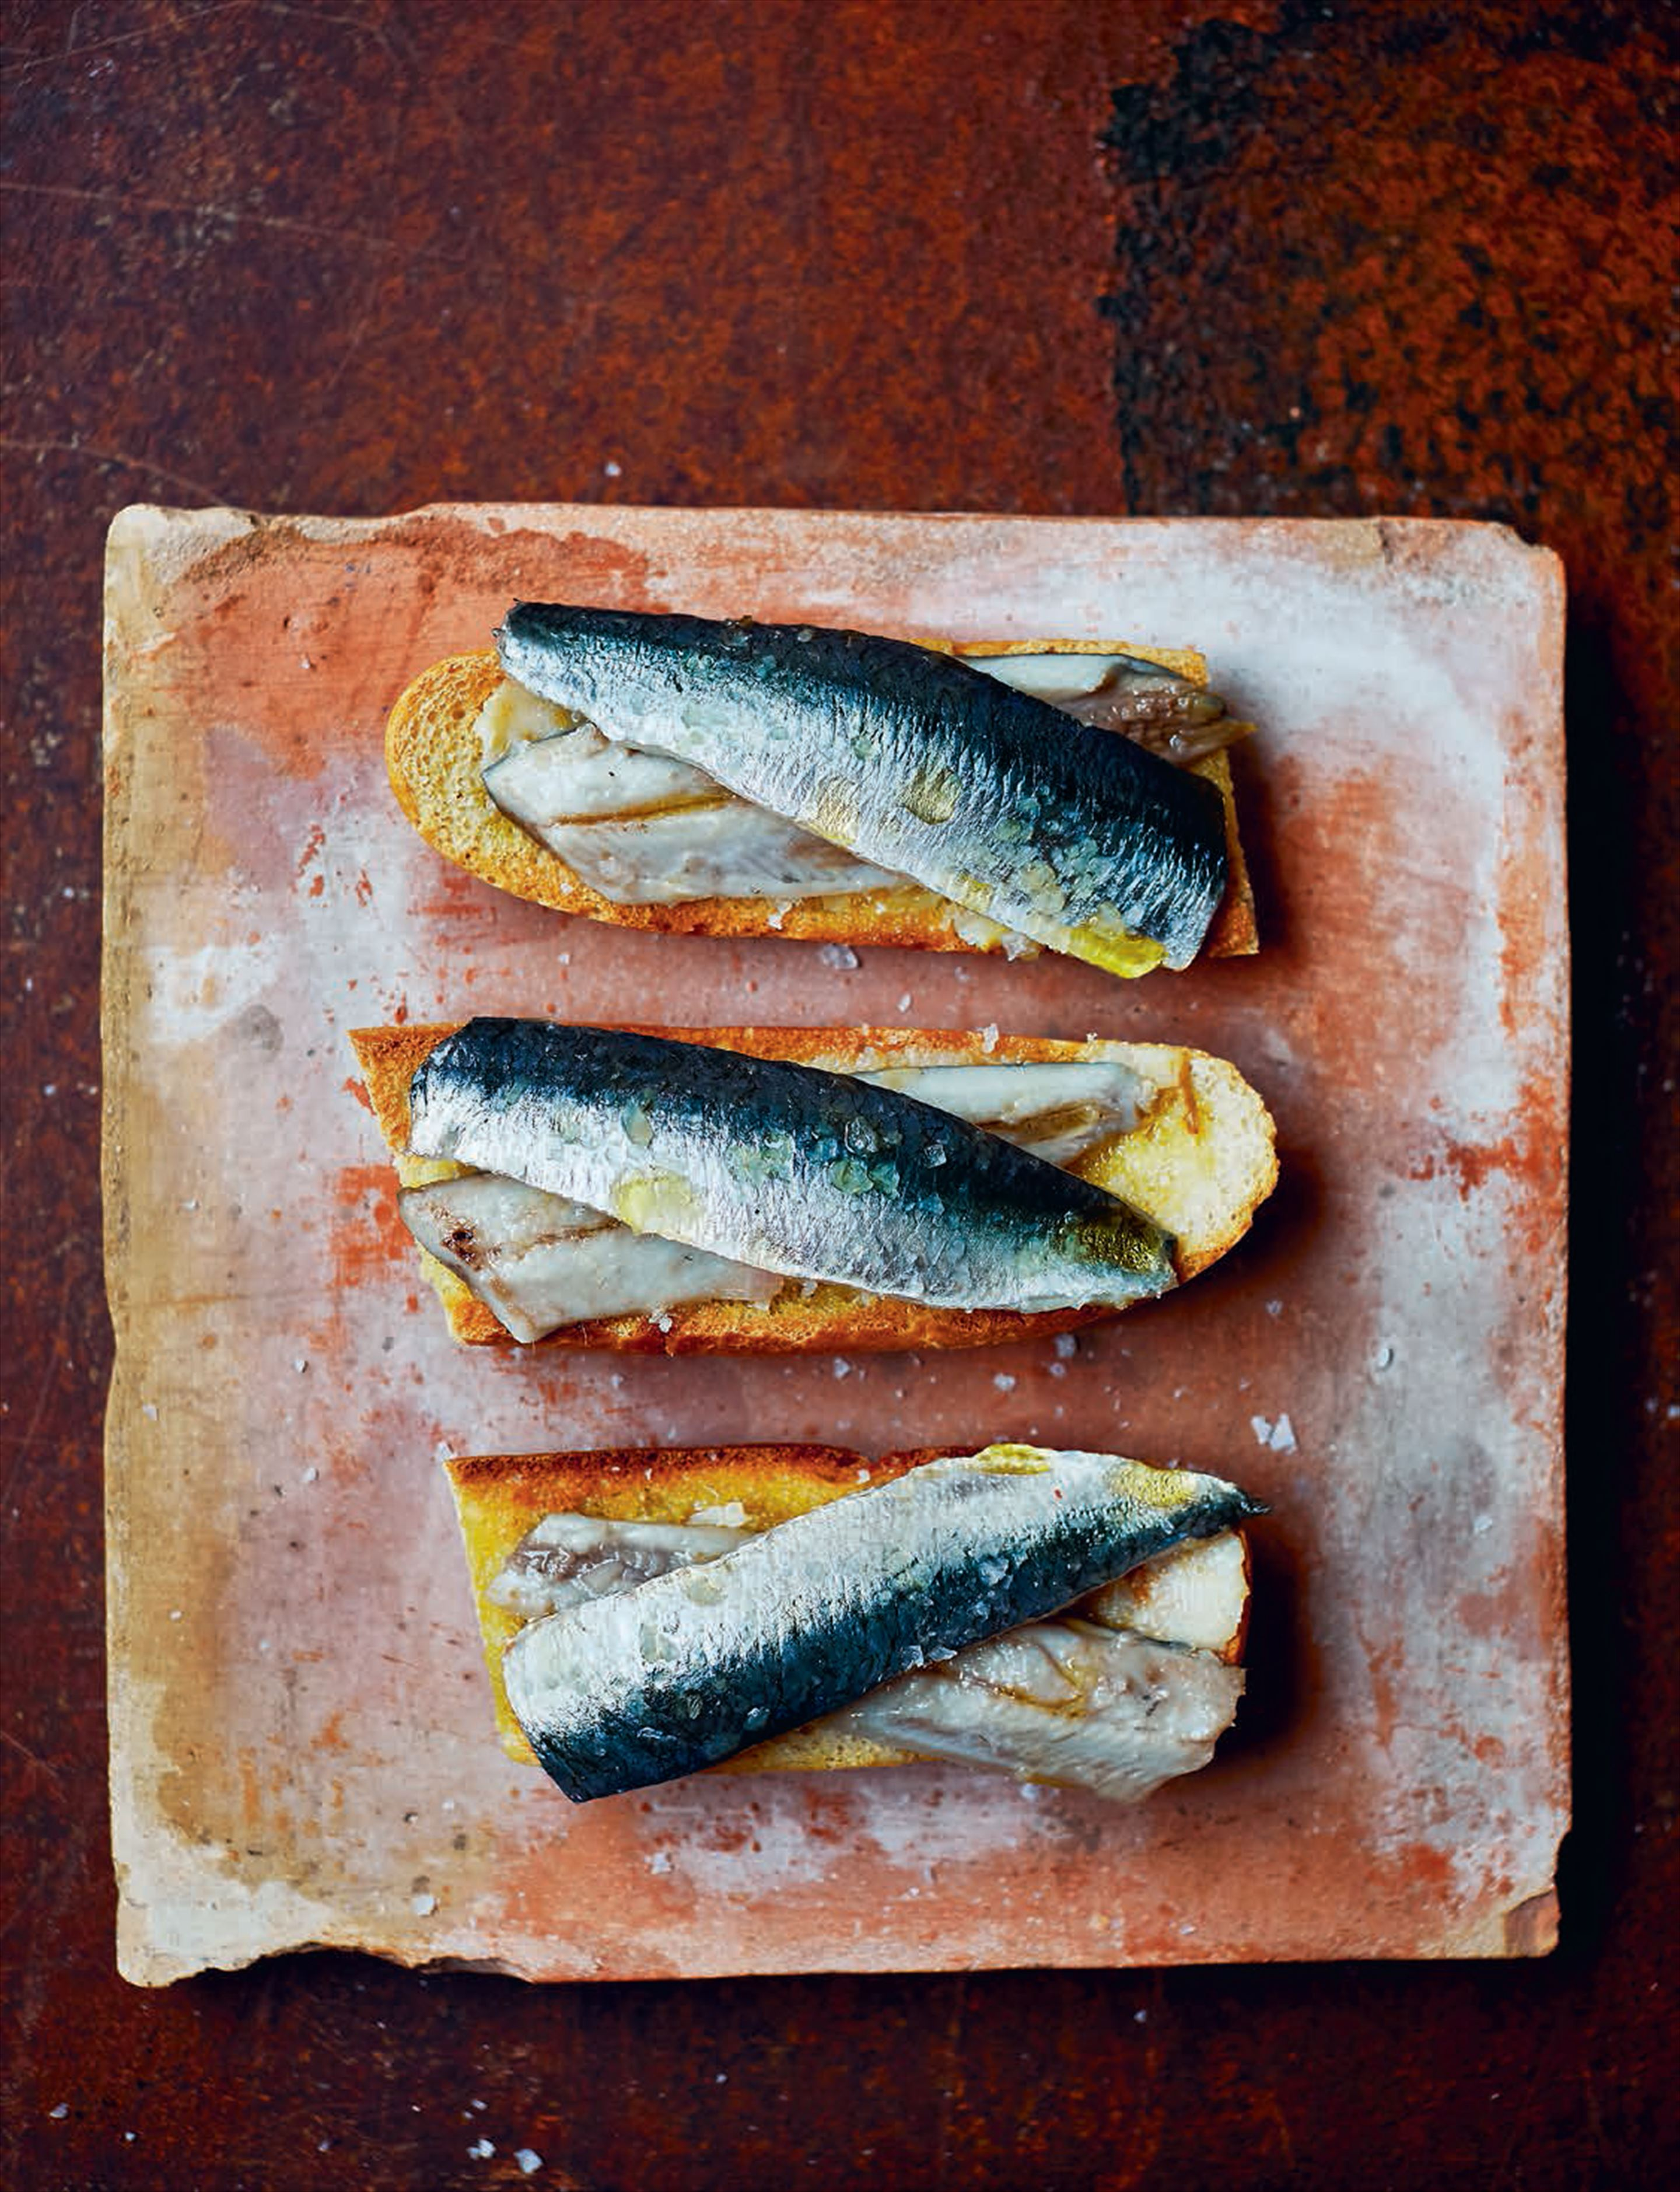 Sardines marinated in cider or txakoli vinegar